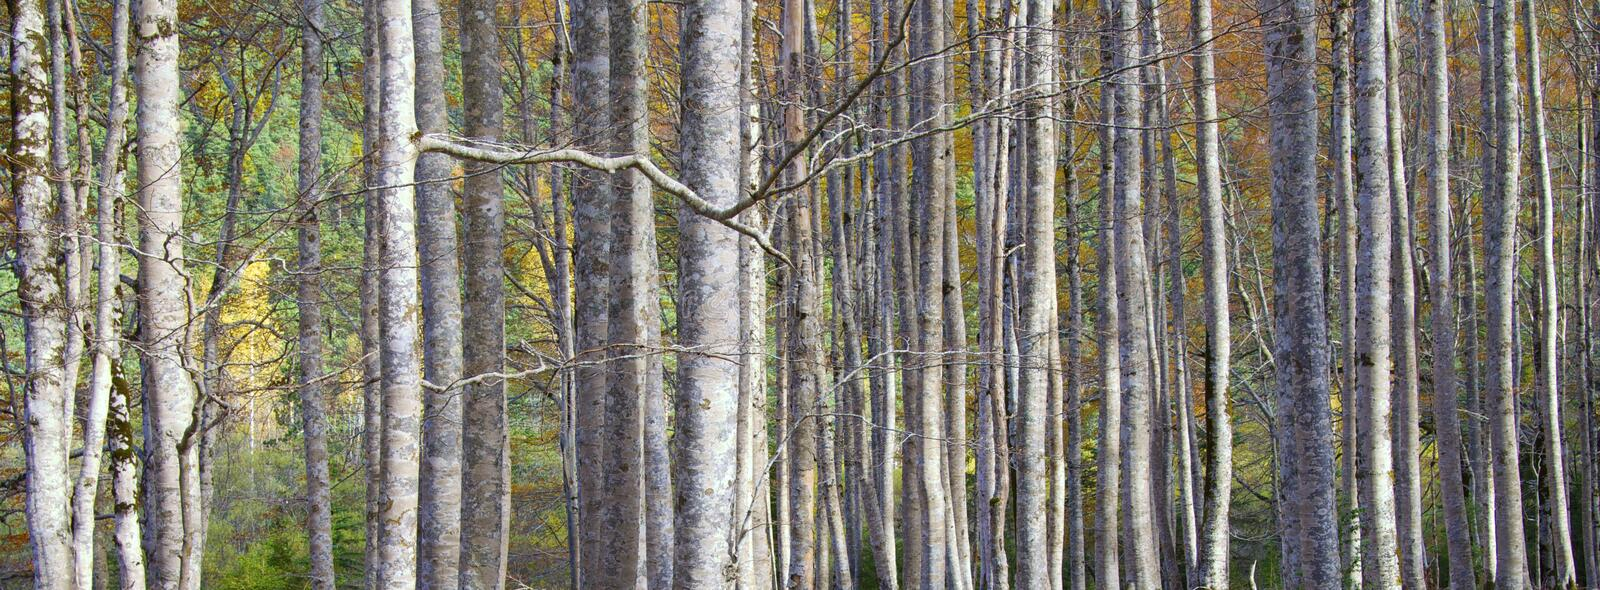 Download Trunks stock image. Image of branches, large, closeup - 17851427